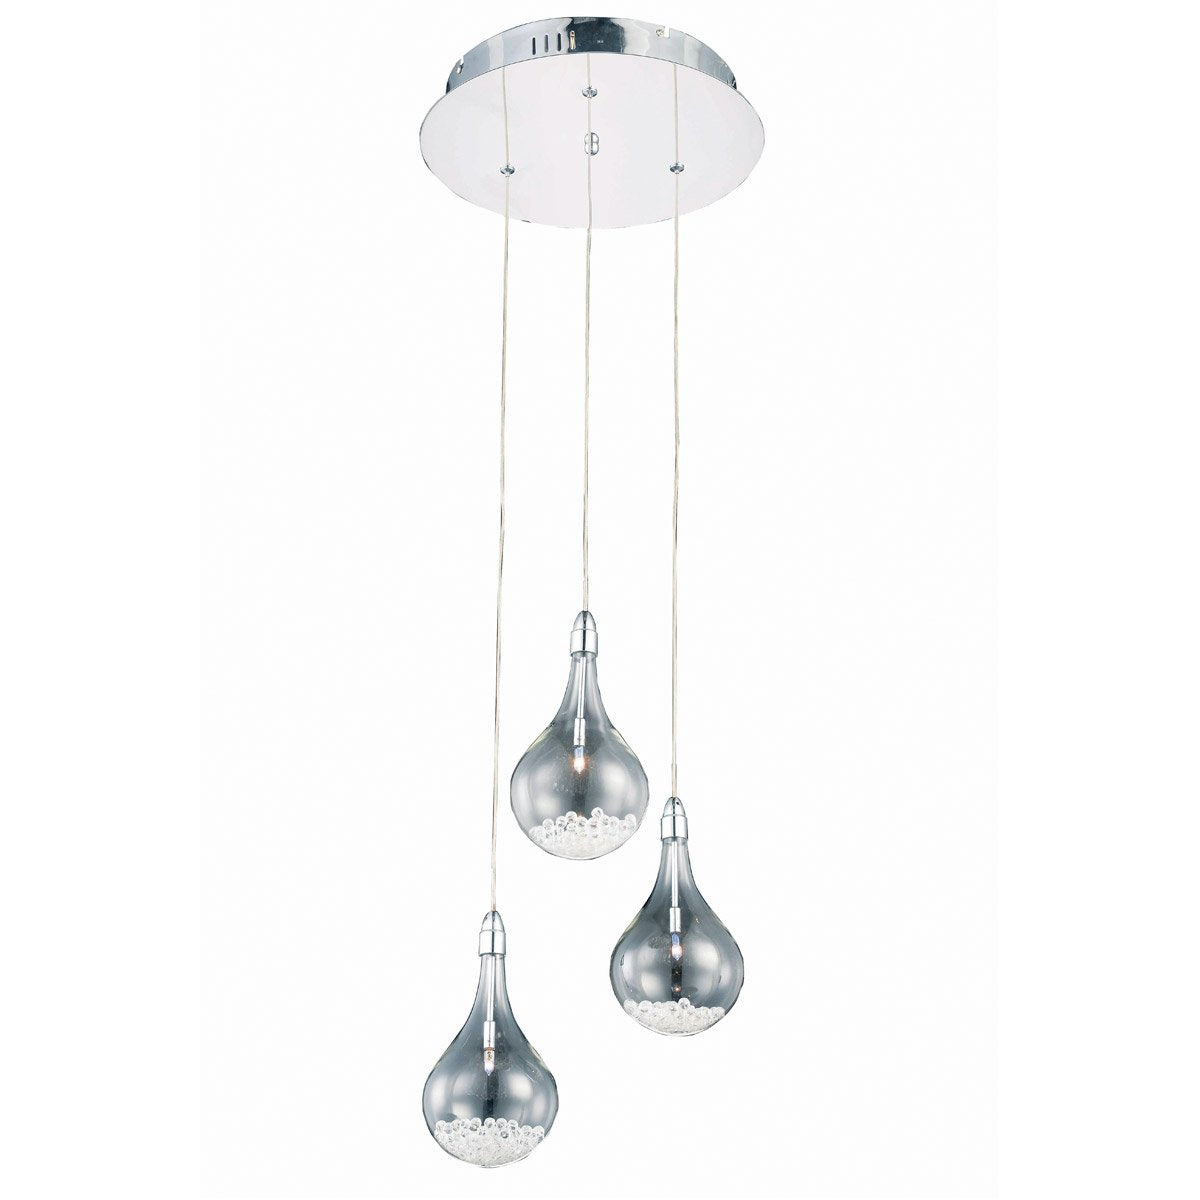 Edison 13 Crystal Mini Pendant With 3 Lights - Chrome Finish Pendant